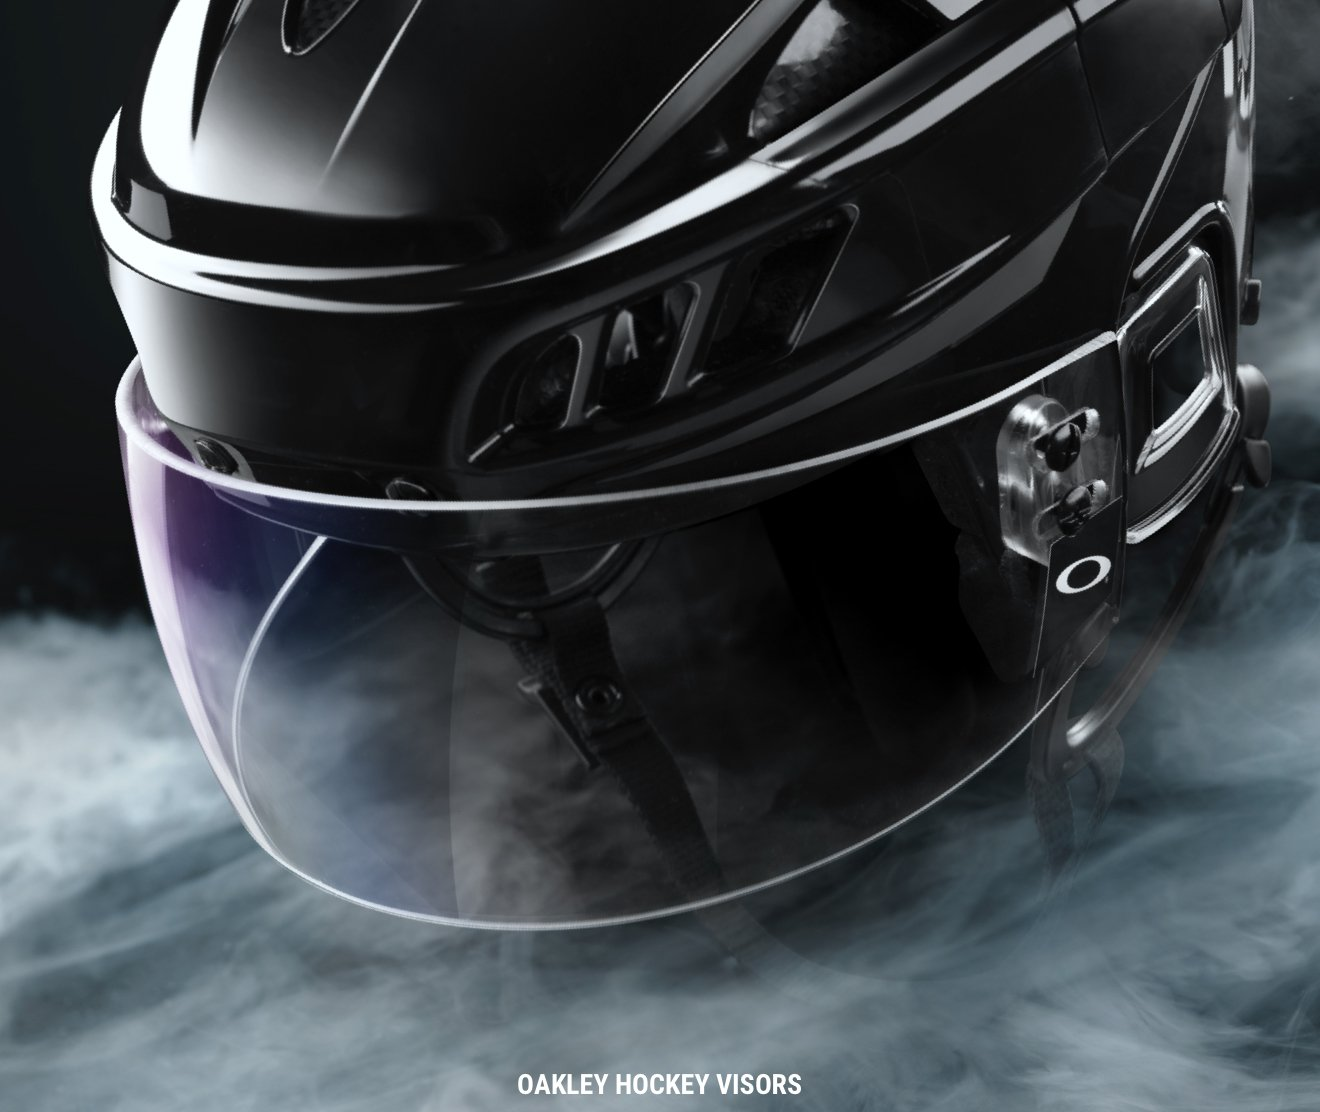 OAKLEY HOCKEY VISORS